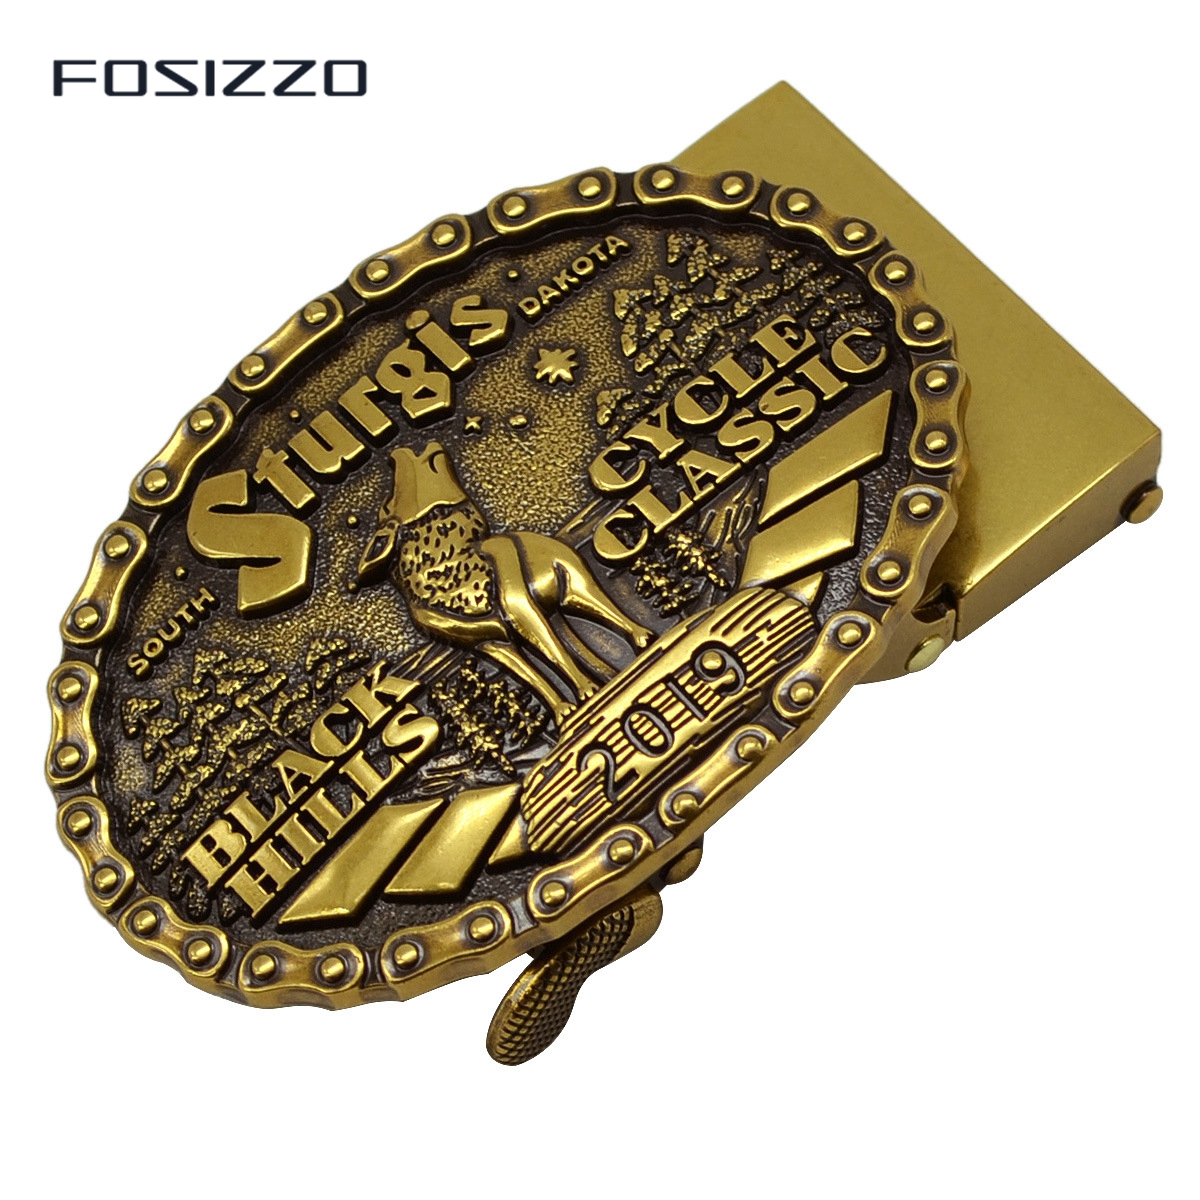 FOSIZZO New Fashion High Quality Men's Buckle Zinc Alloy Automatic Buckle 3.6CM #0166